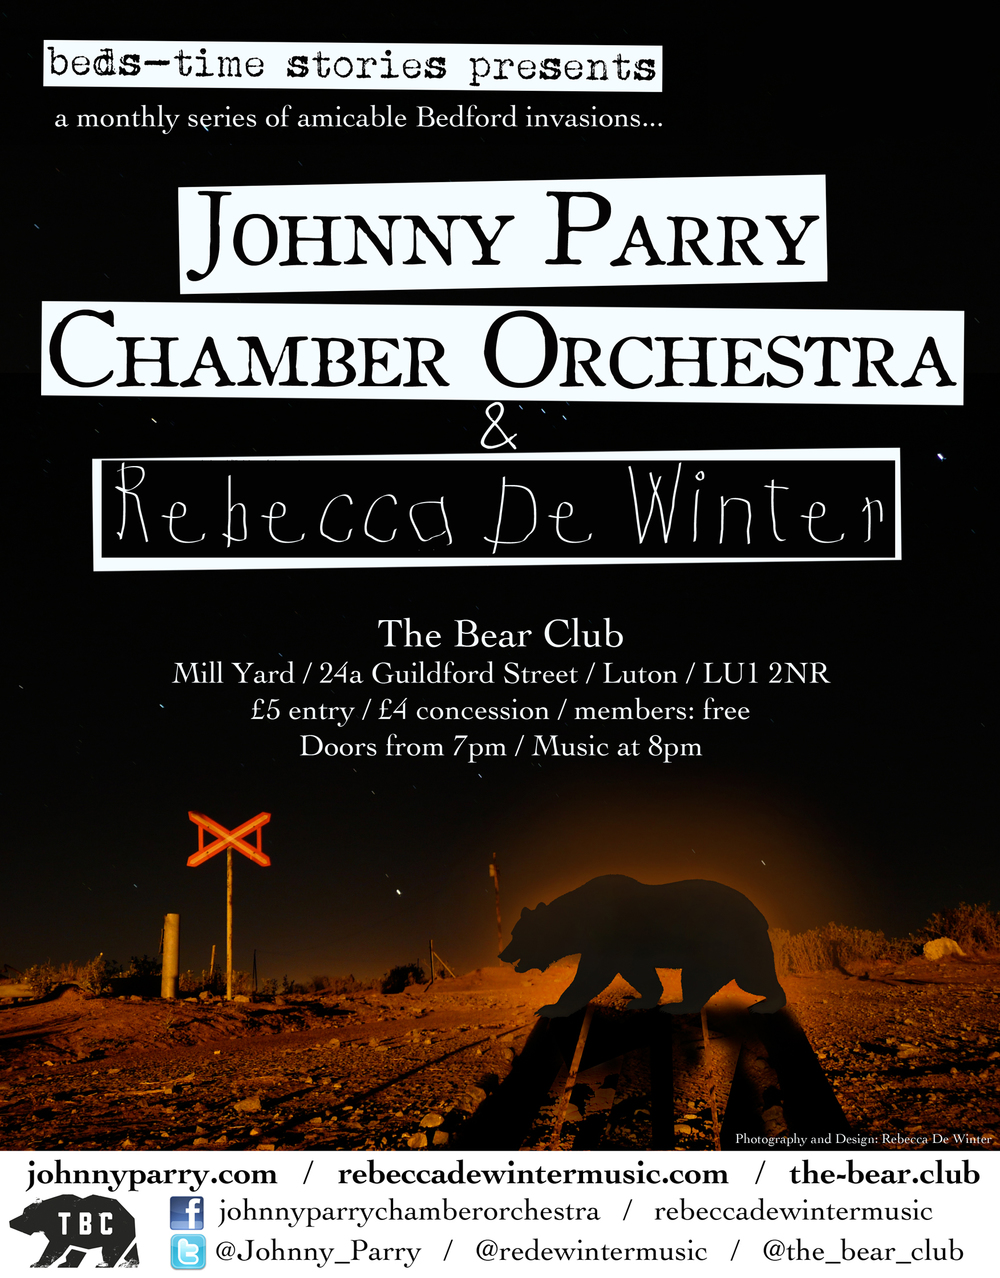 15 03 14 The Bear Club Poster A5.jpg